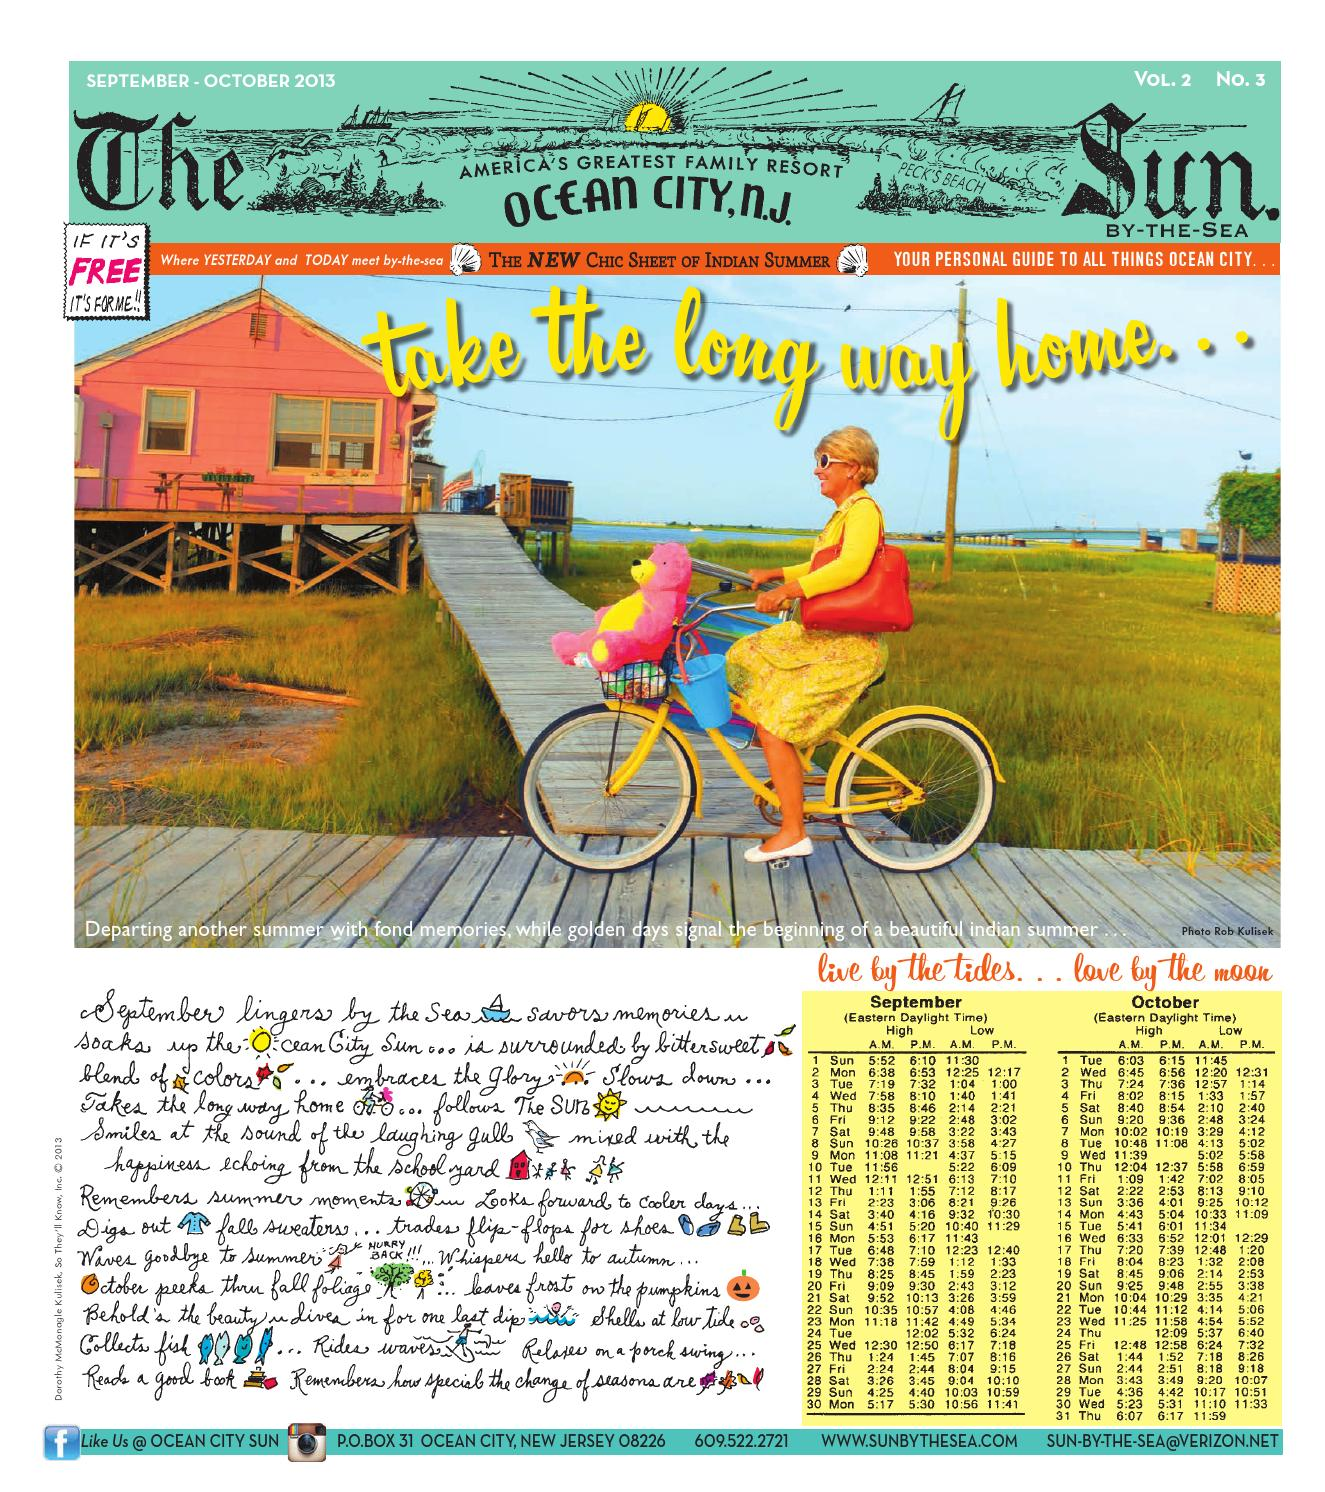 Take the long way home by the sun by the sea issuu nvjuhfo Image collections